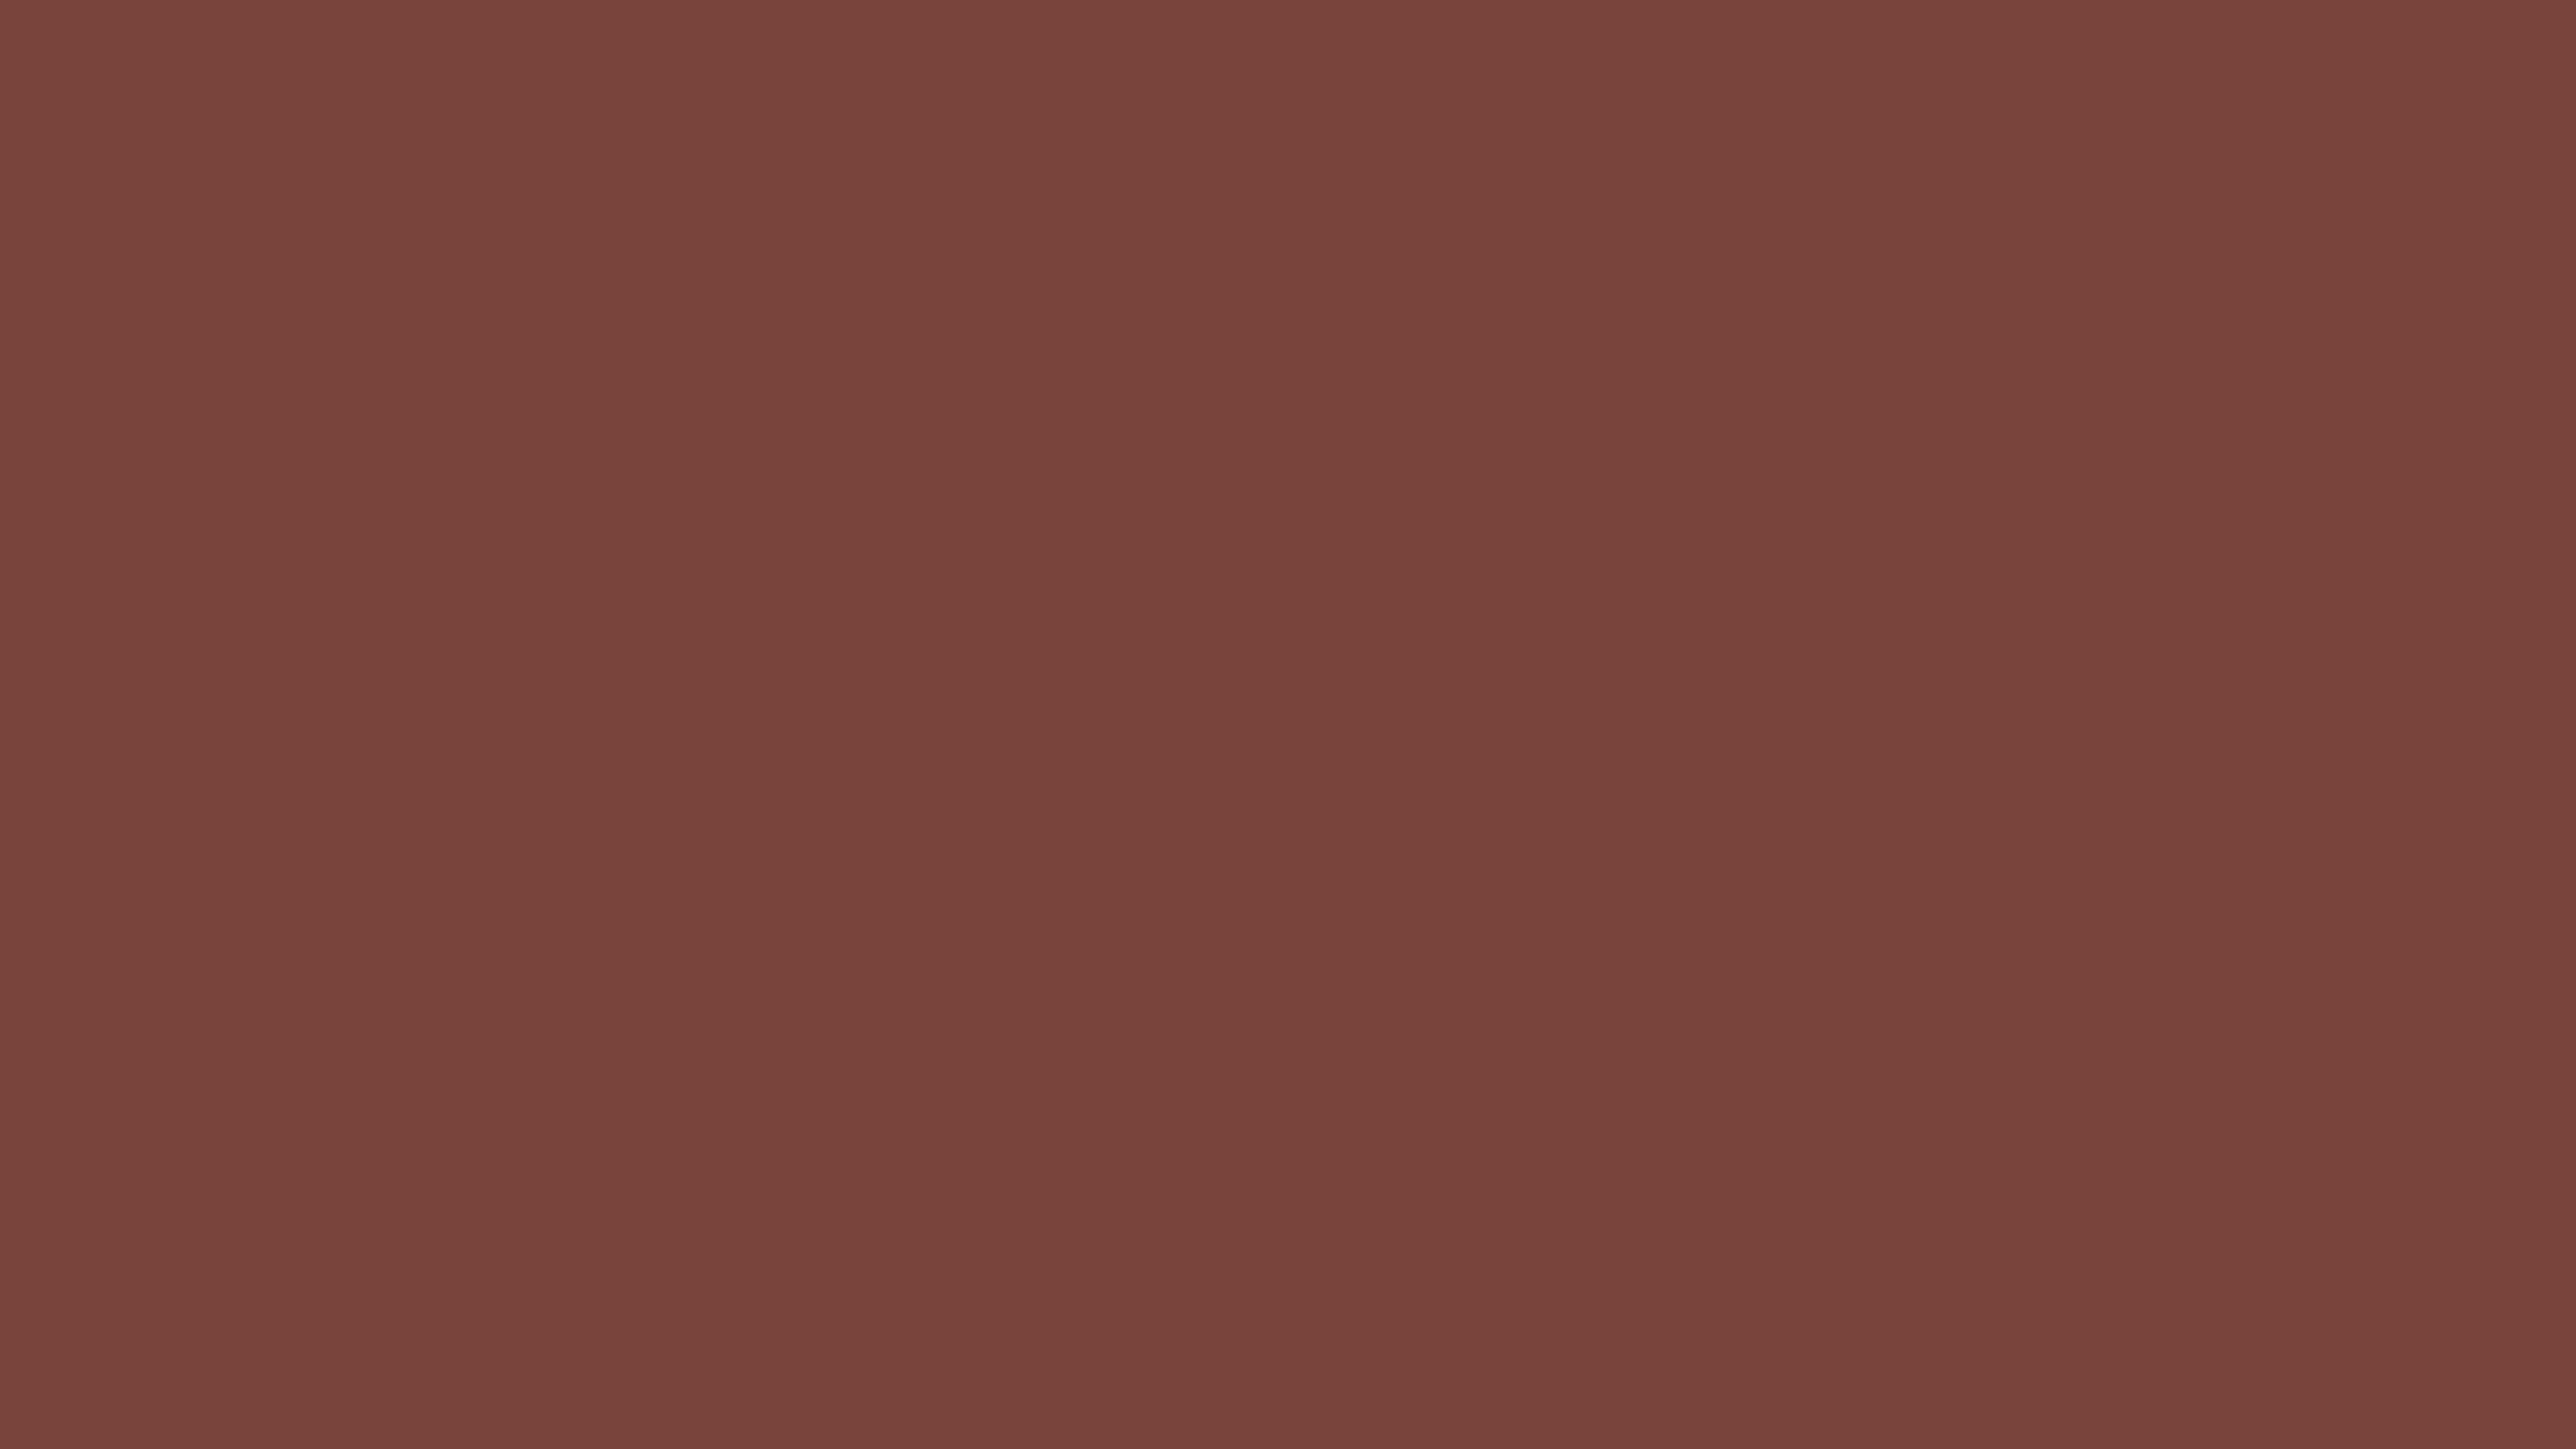 3840x2160 Medium Tuscan Red Solid Color Background